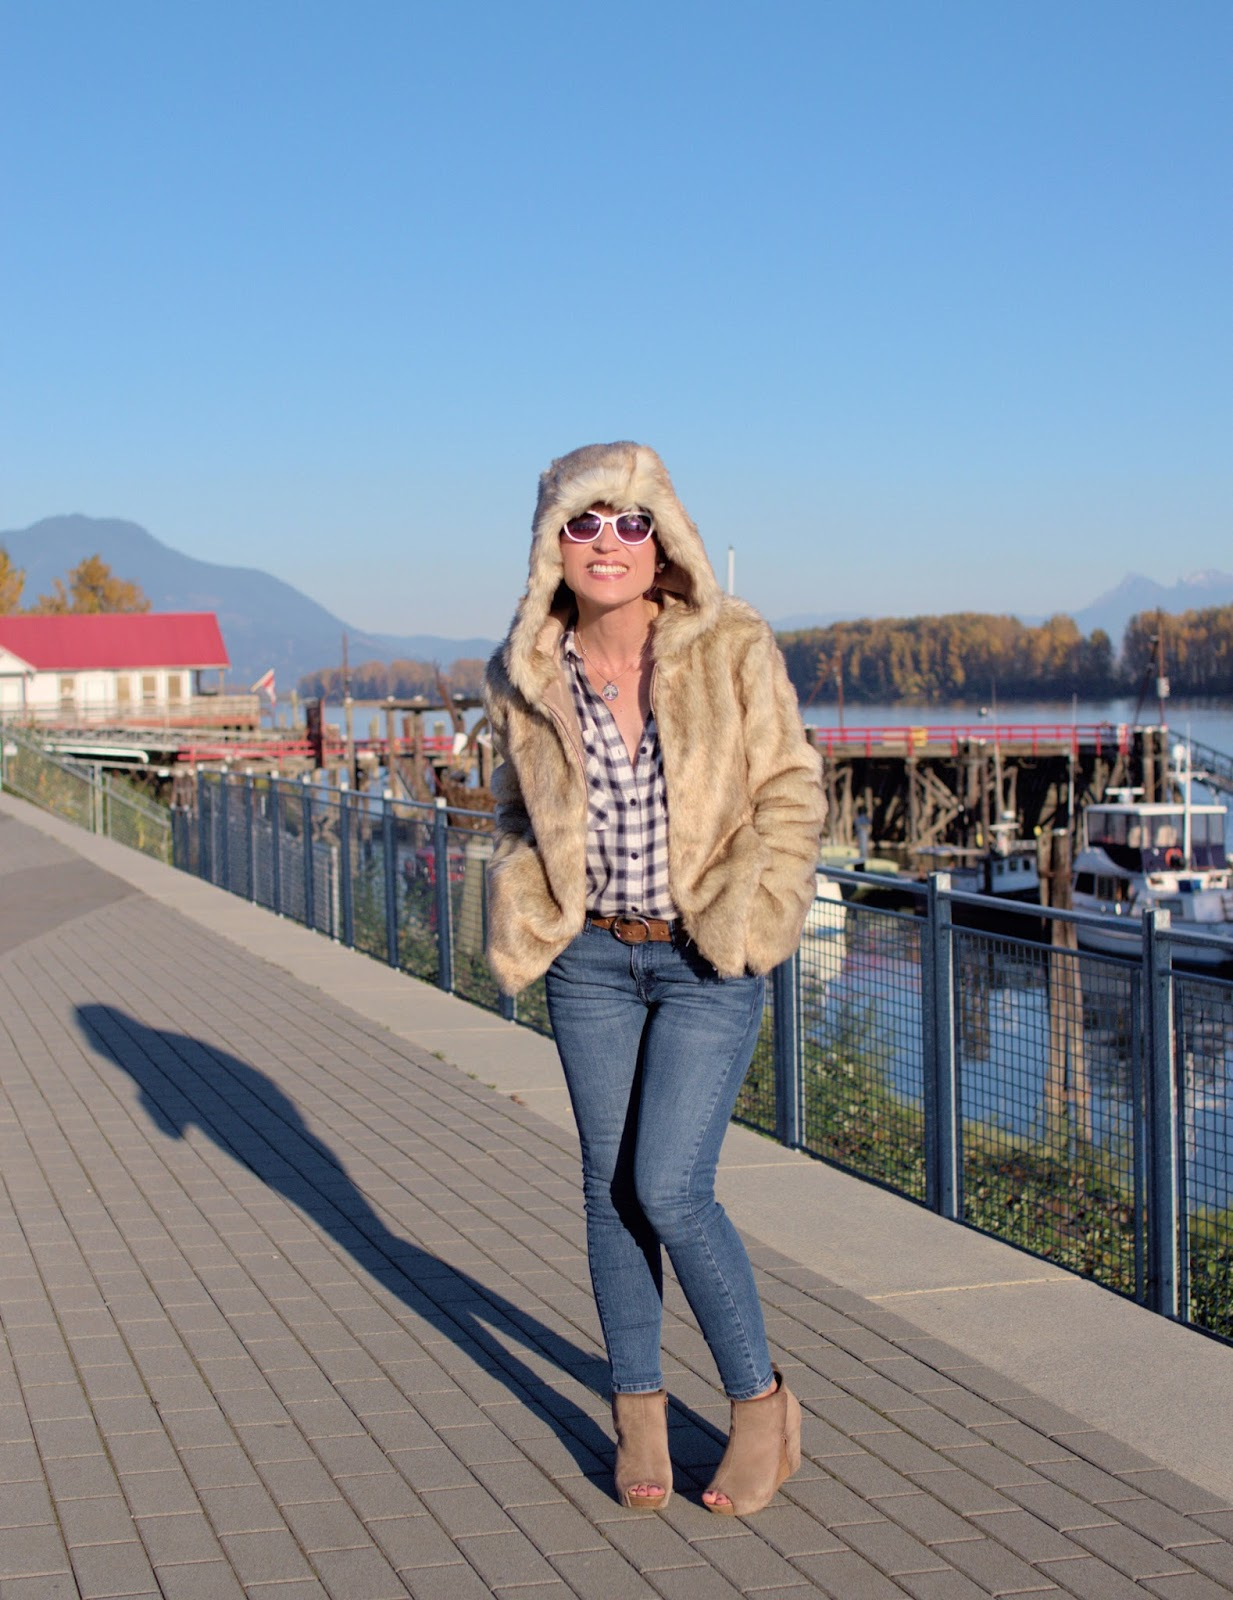 Monika Faulkner outfit inspiration - faux-fur hoodie, plaid flannel shirt, skinny jeans, open-toe booties, and white sunglasses